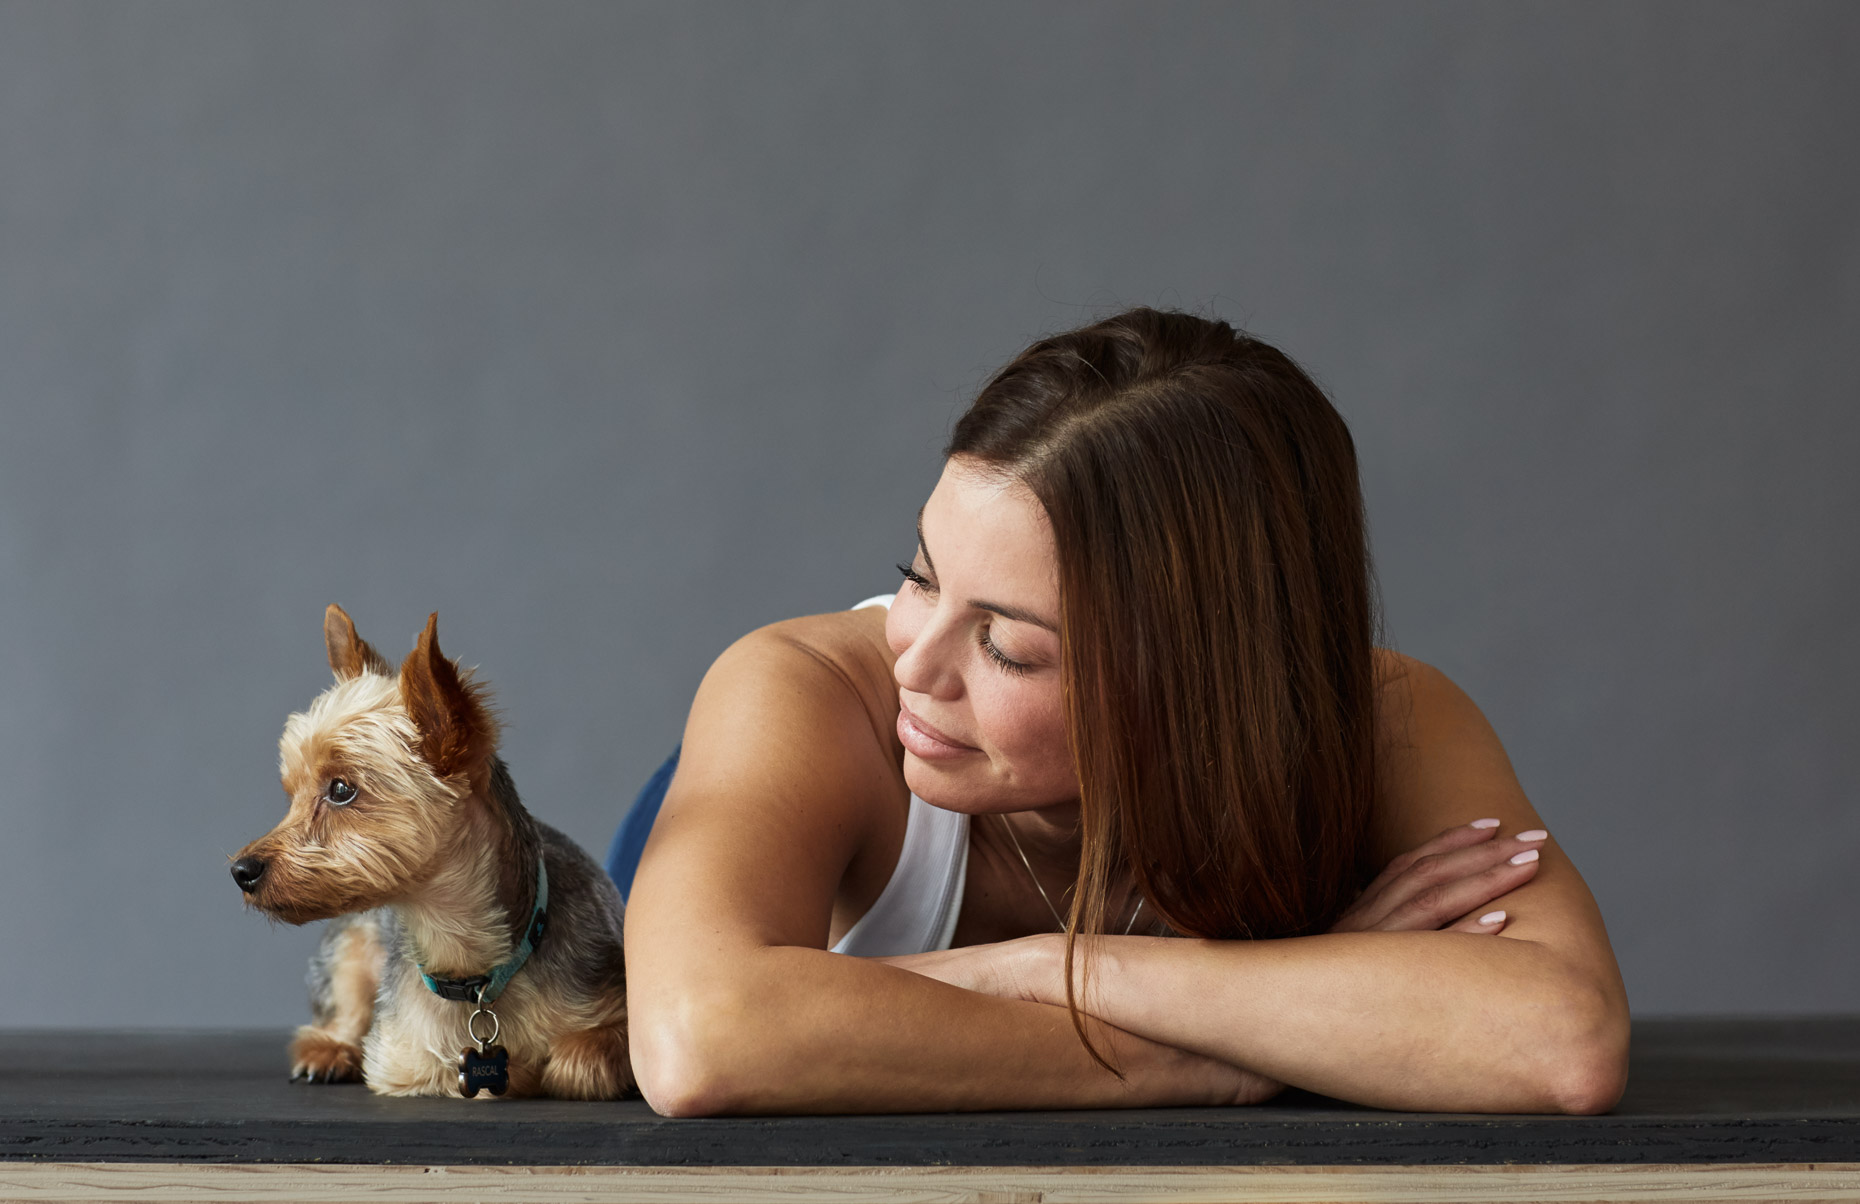 A-studio-portrait-of-a-woman-relaxing-with-her-dog-against-a-gray-background